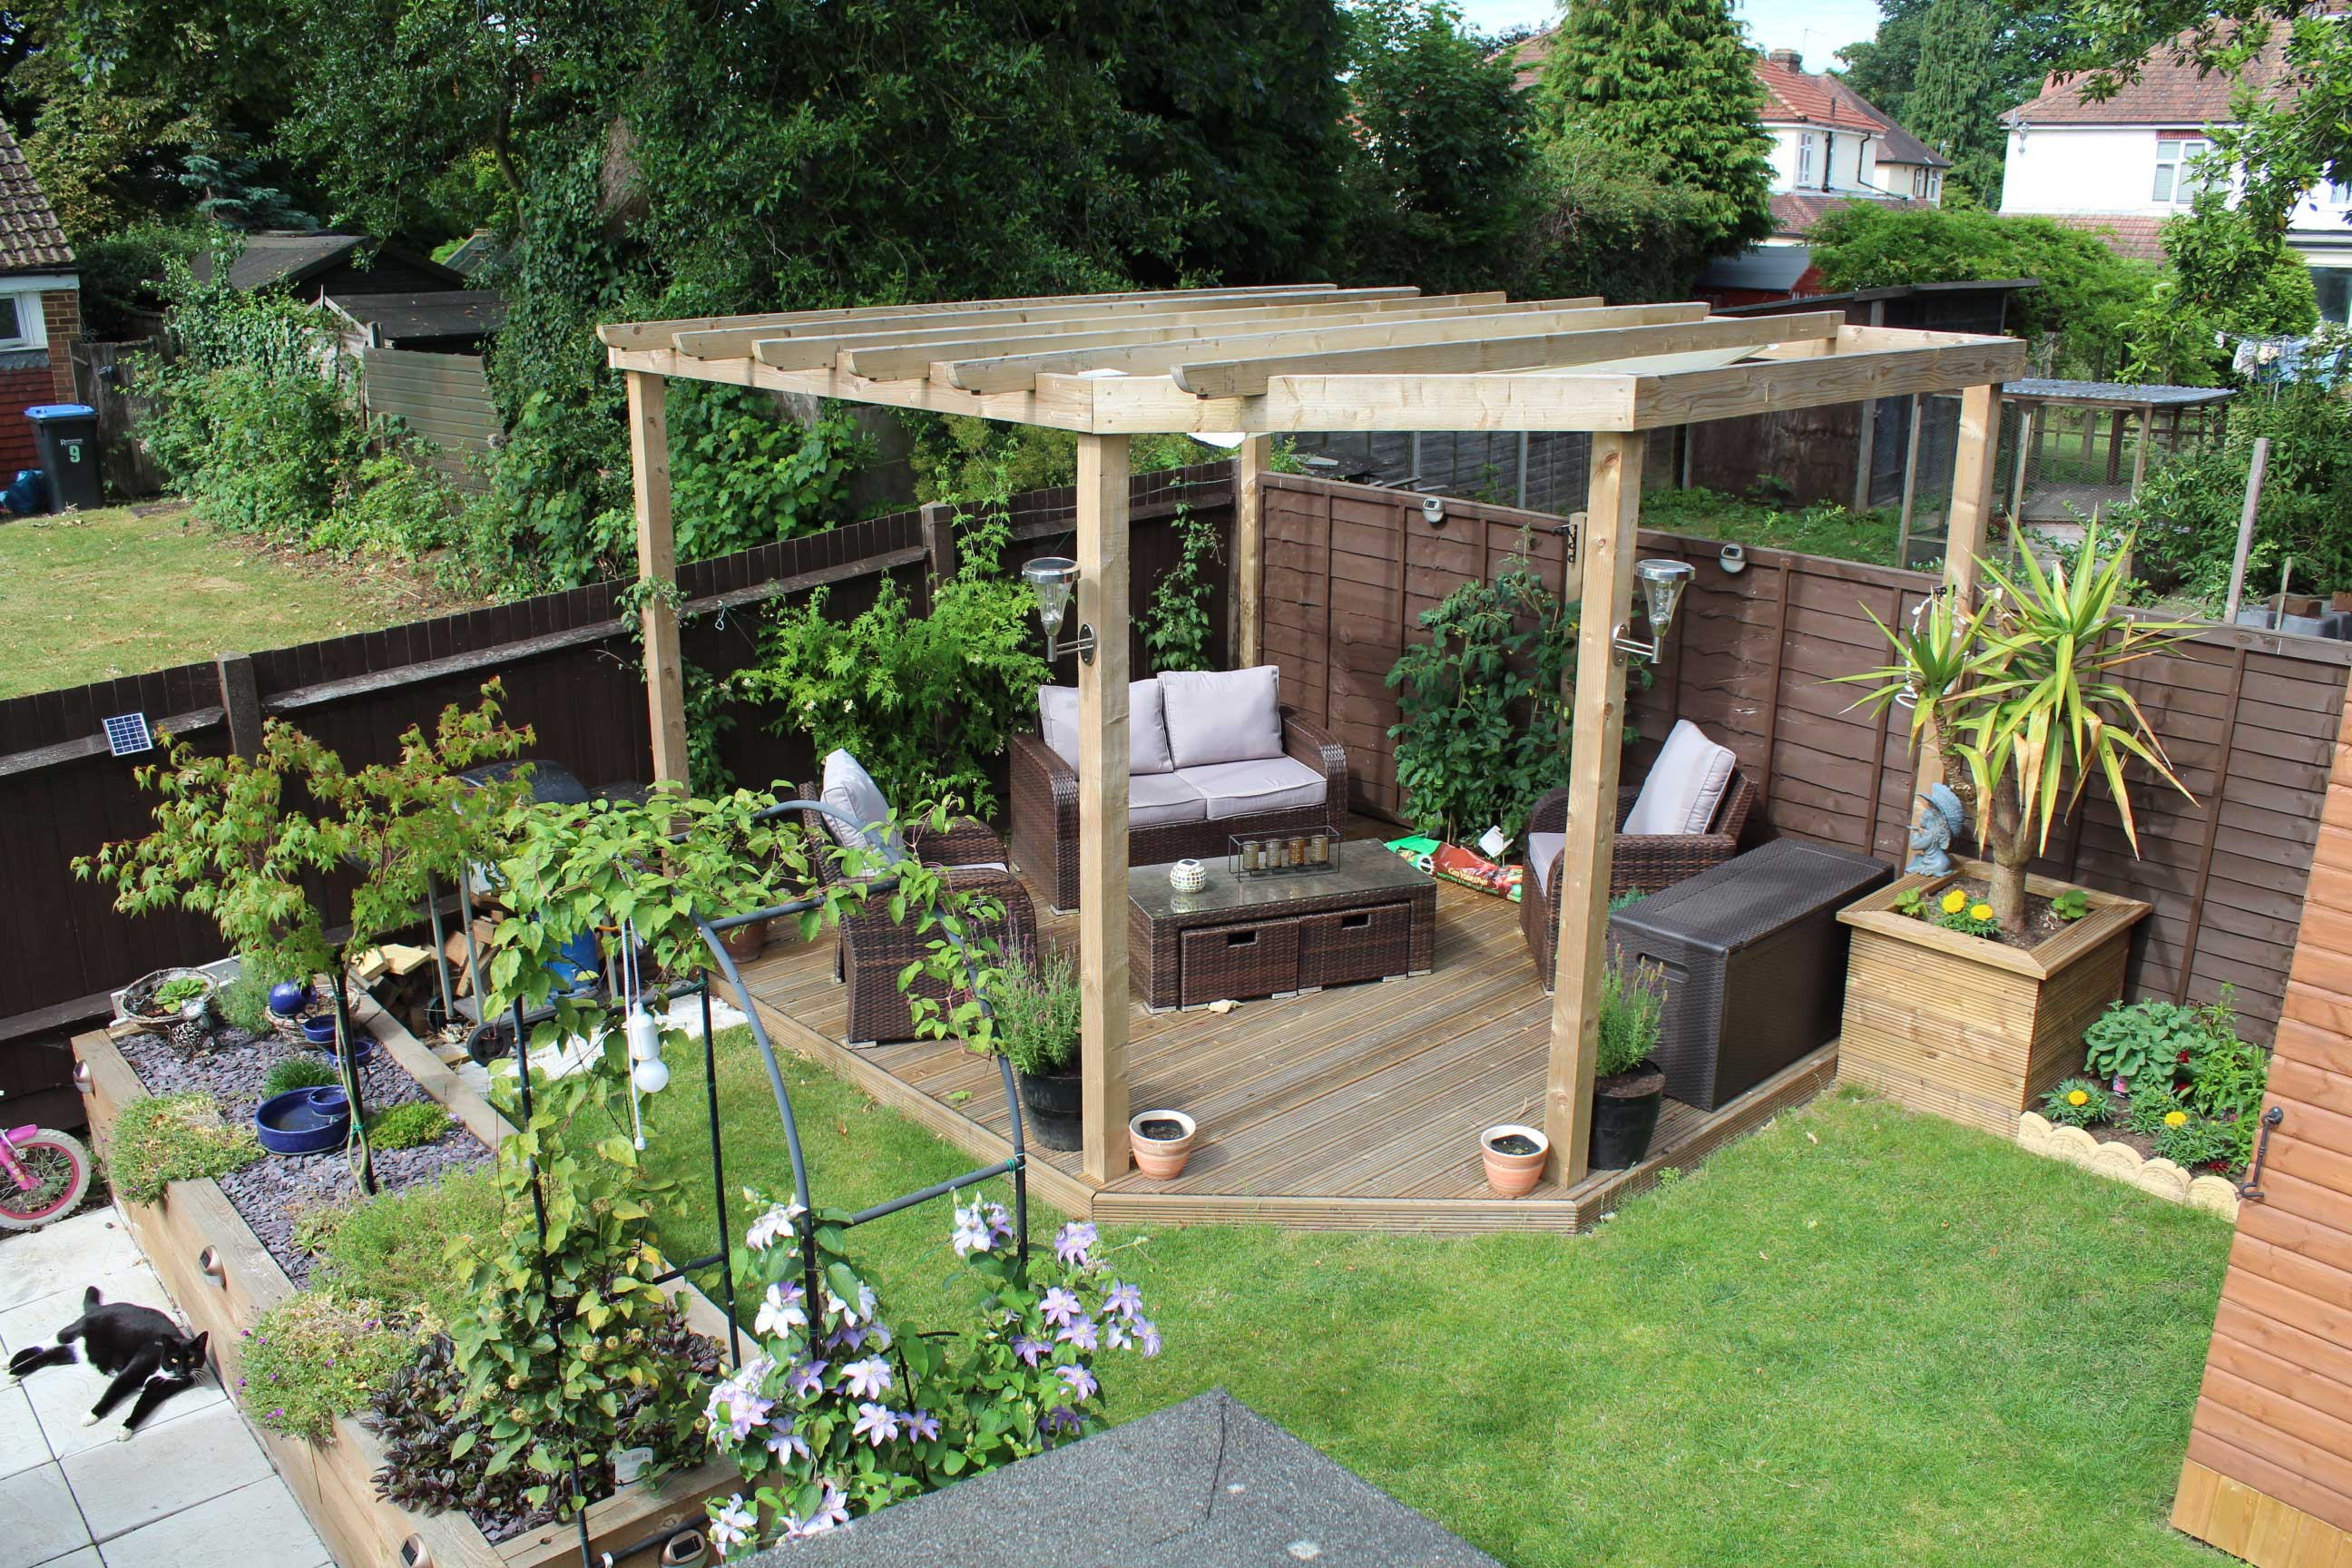 Pergola - This custom-made pergola finished the garden off nicely, this whole garden was done by us, fencing decking turf and growing planters